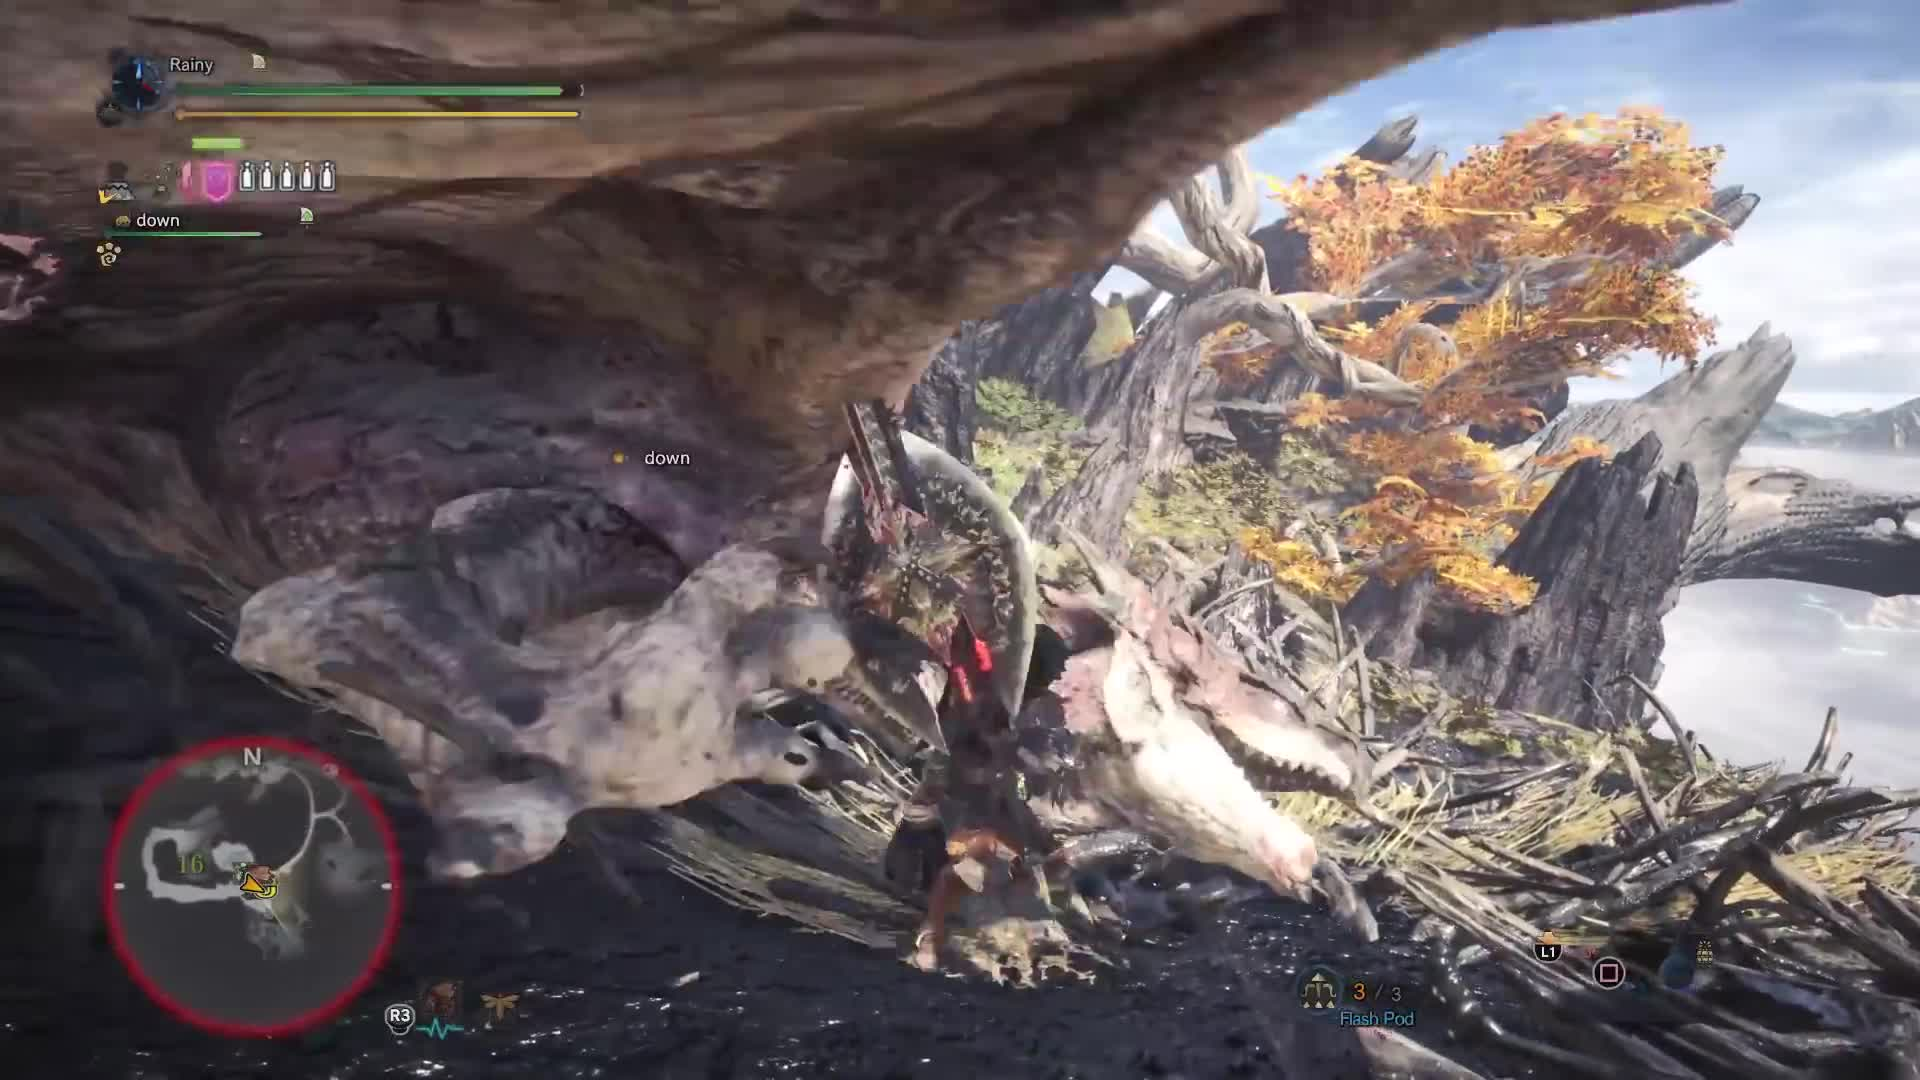 Crossbow Vs Roundup [mhw Beta] Bow Vs Nergigante Round 2 - 3'54'53 Gif By